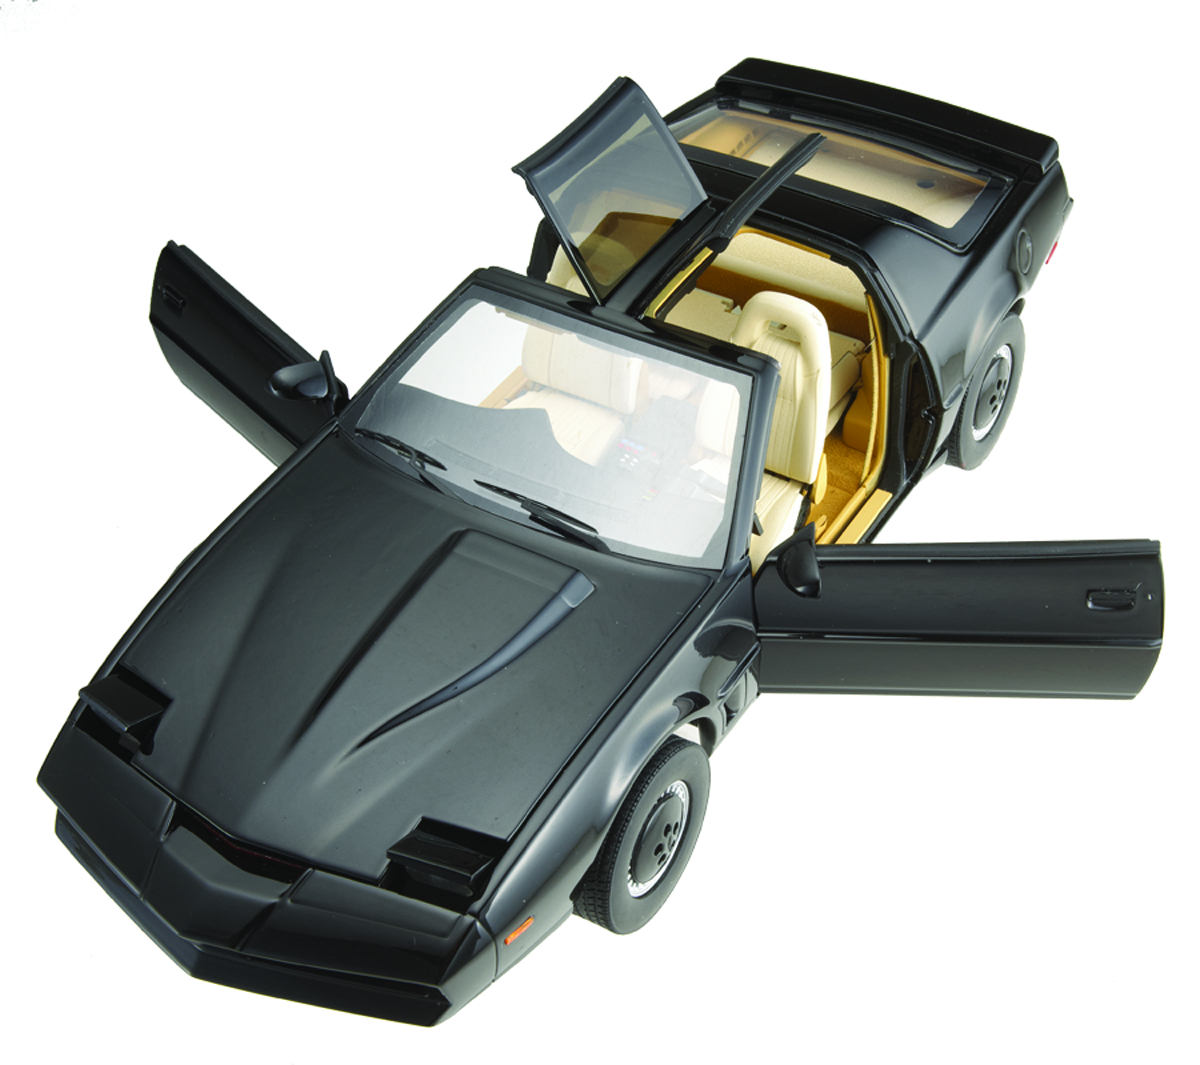 HW ELITE KNIGHT RIDER 1/18 KITT DIE-CAST